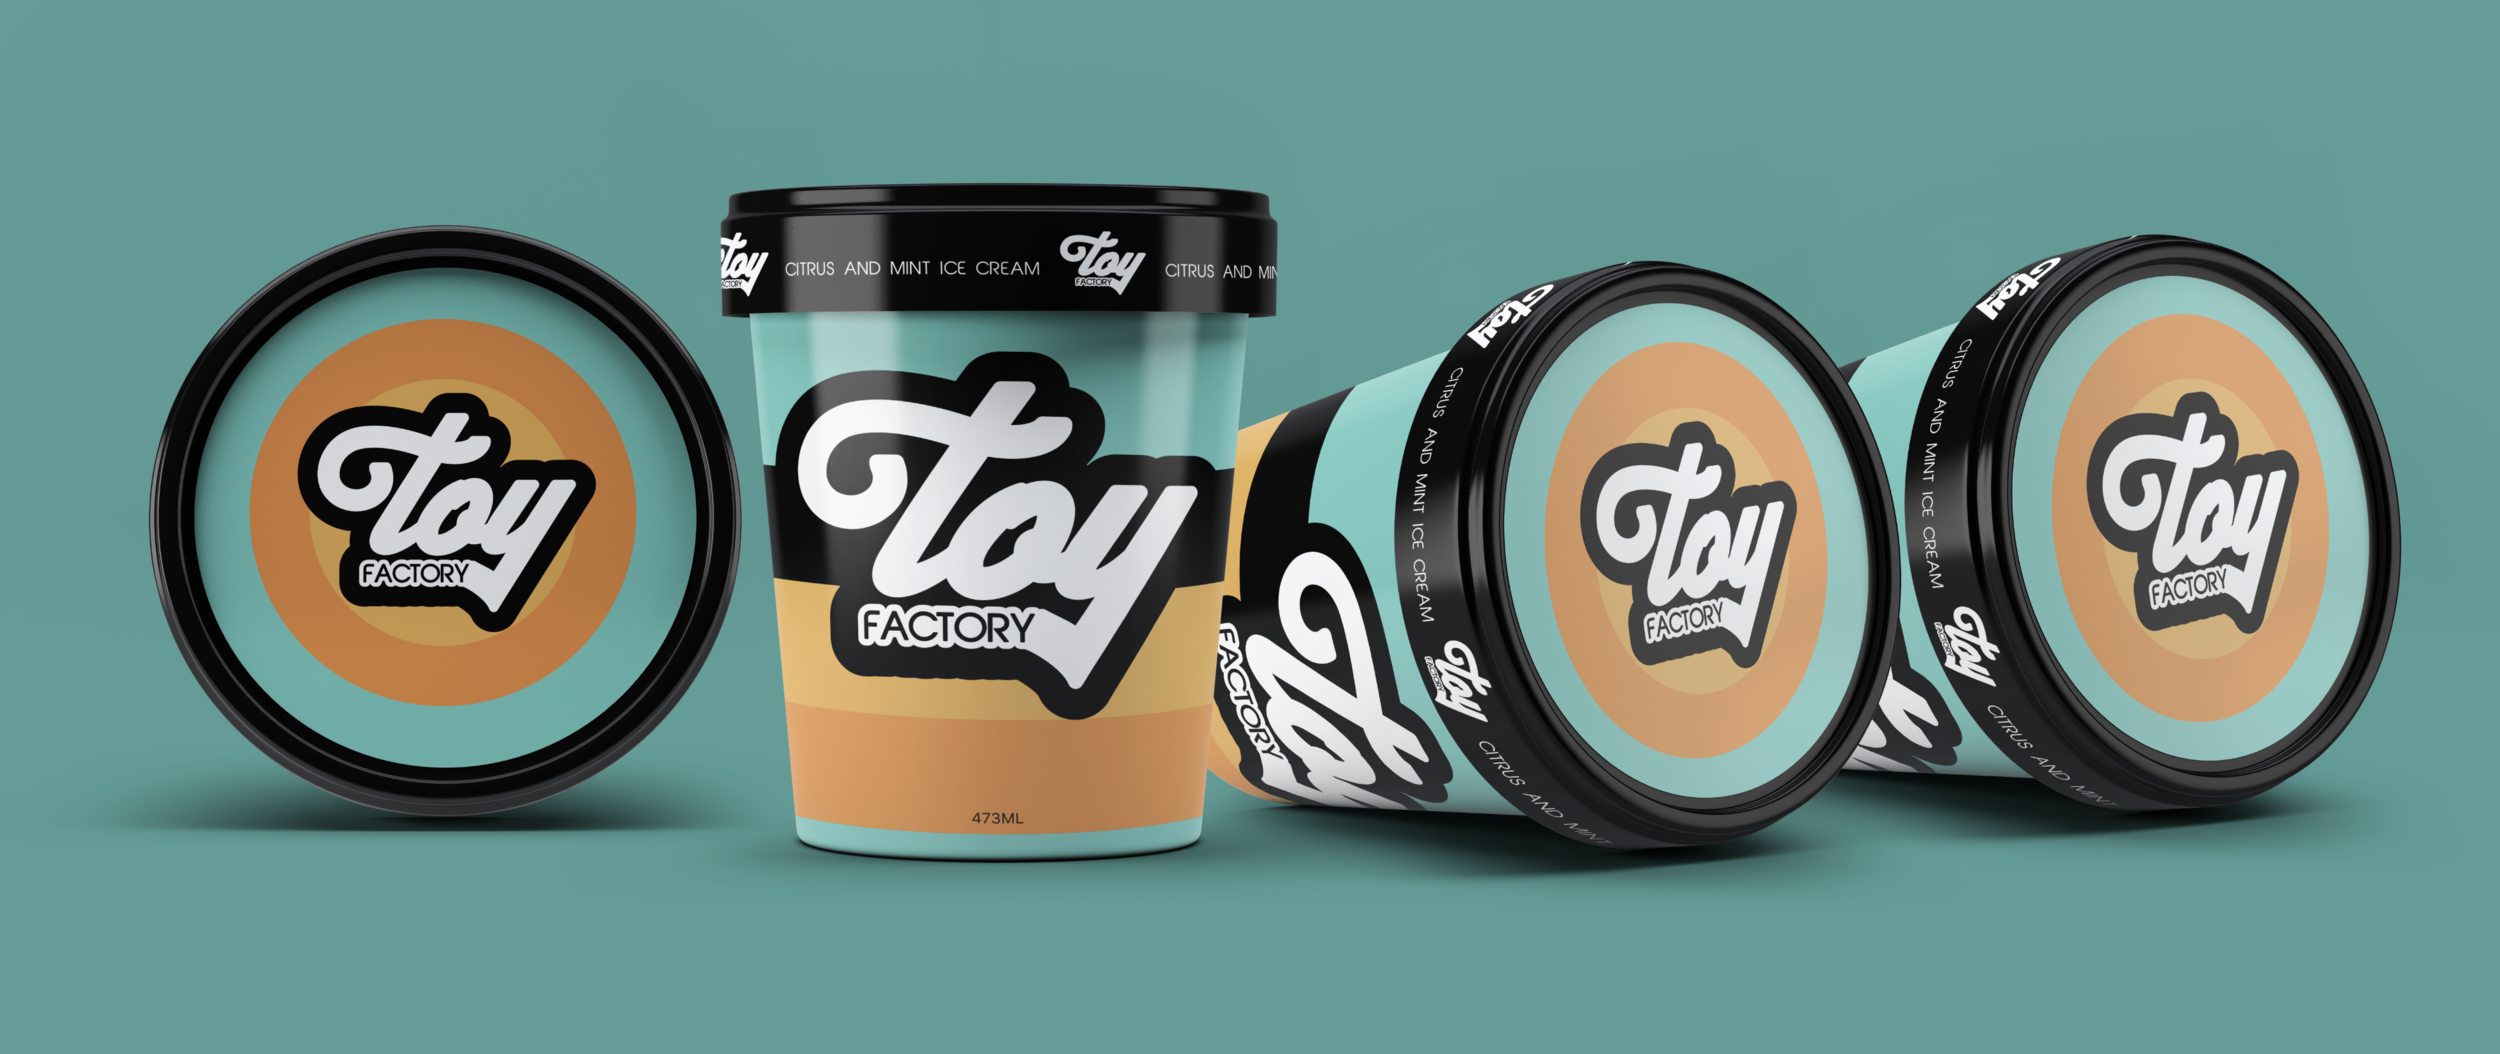 candy brophy creative - Toy Factory Ice Cream6.png